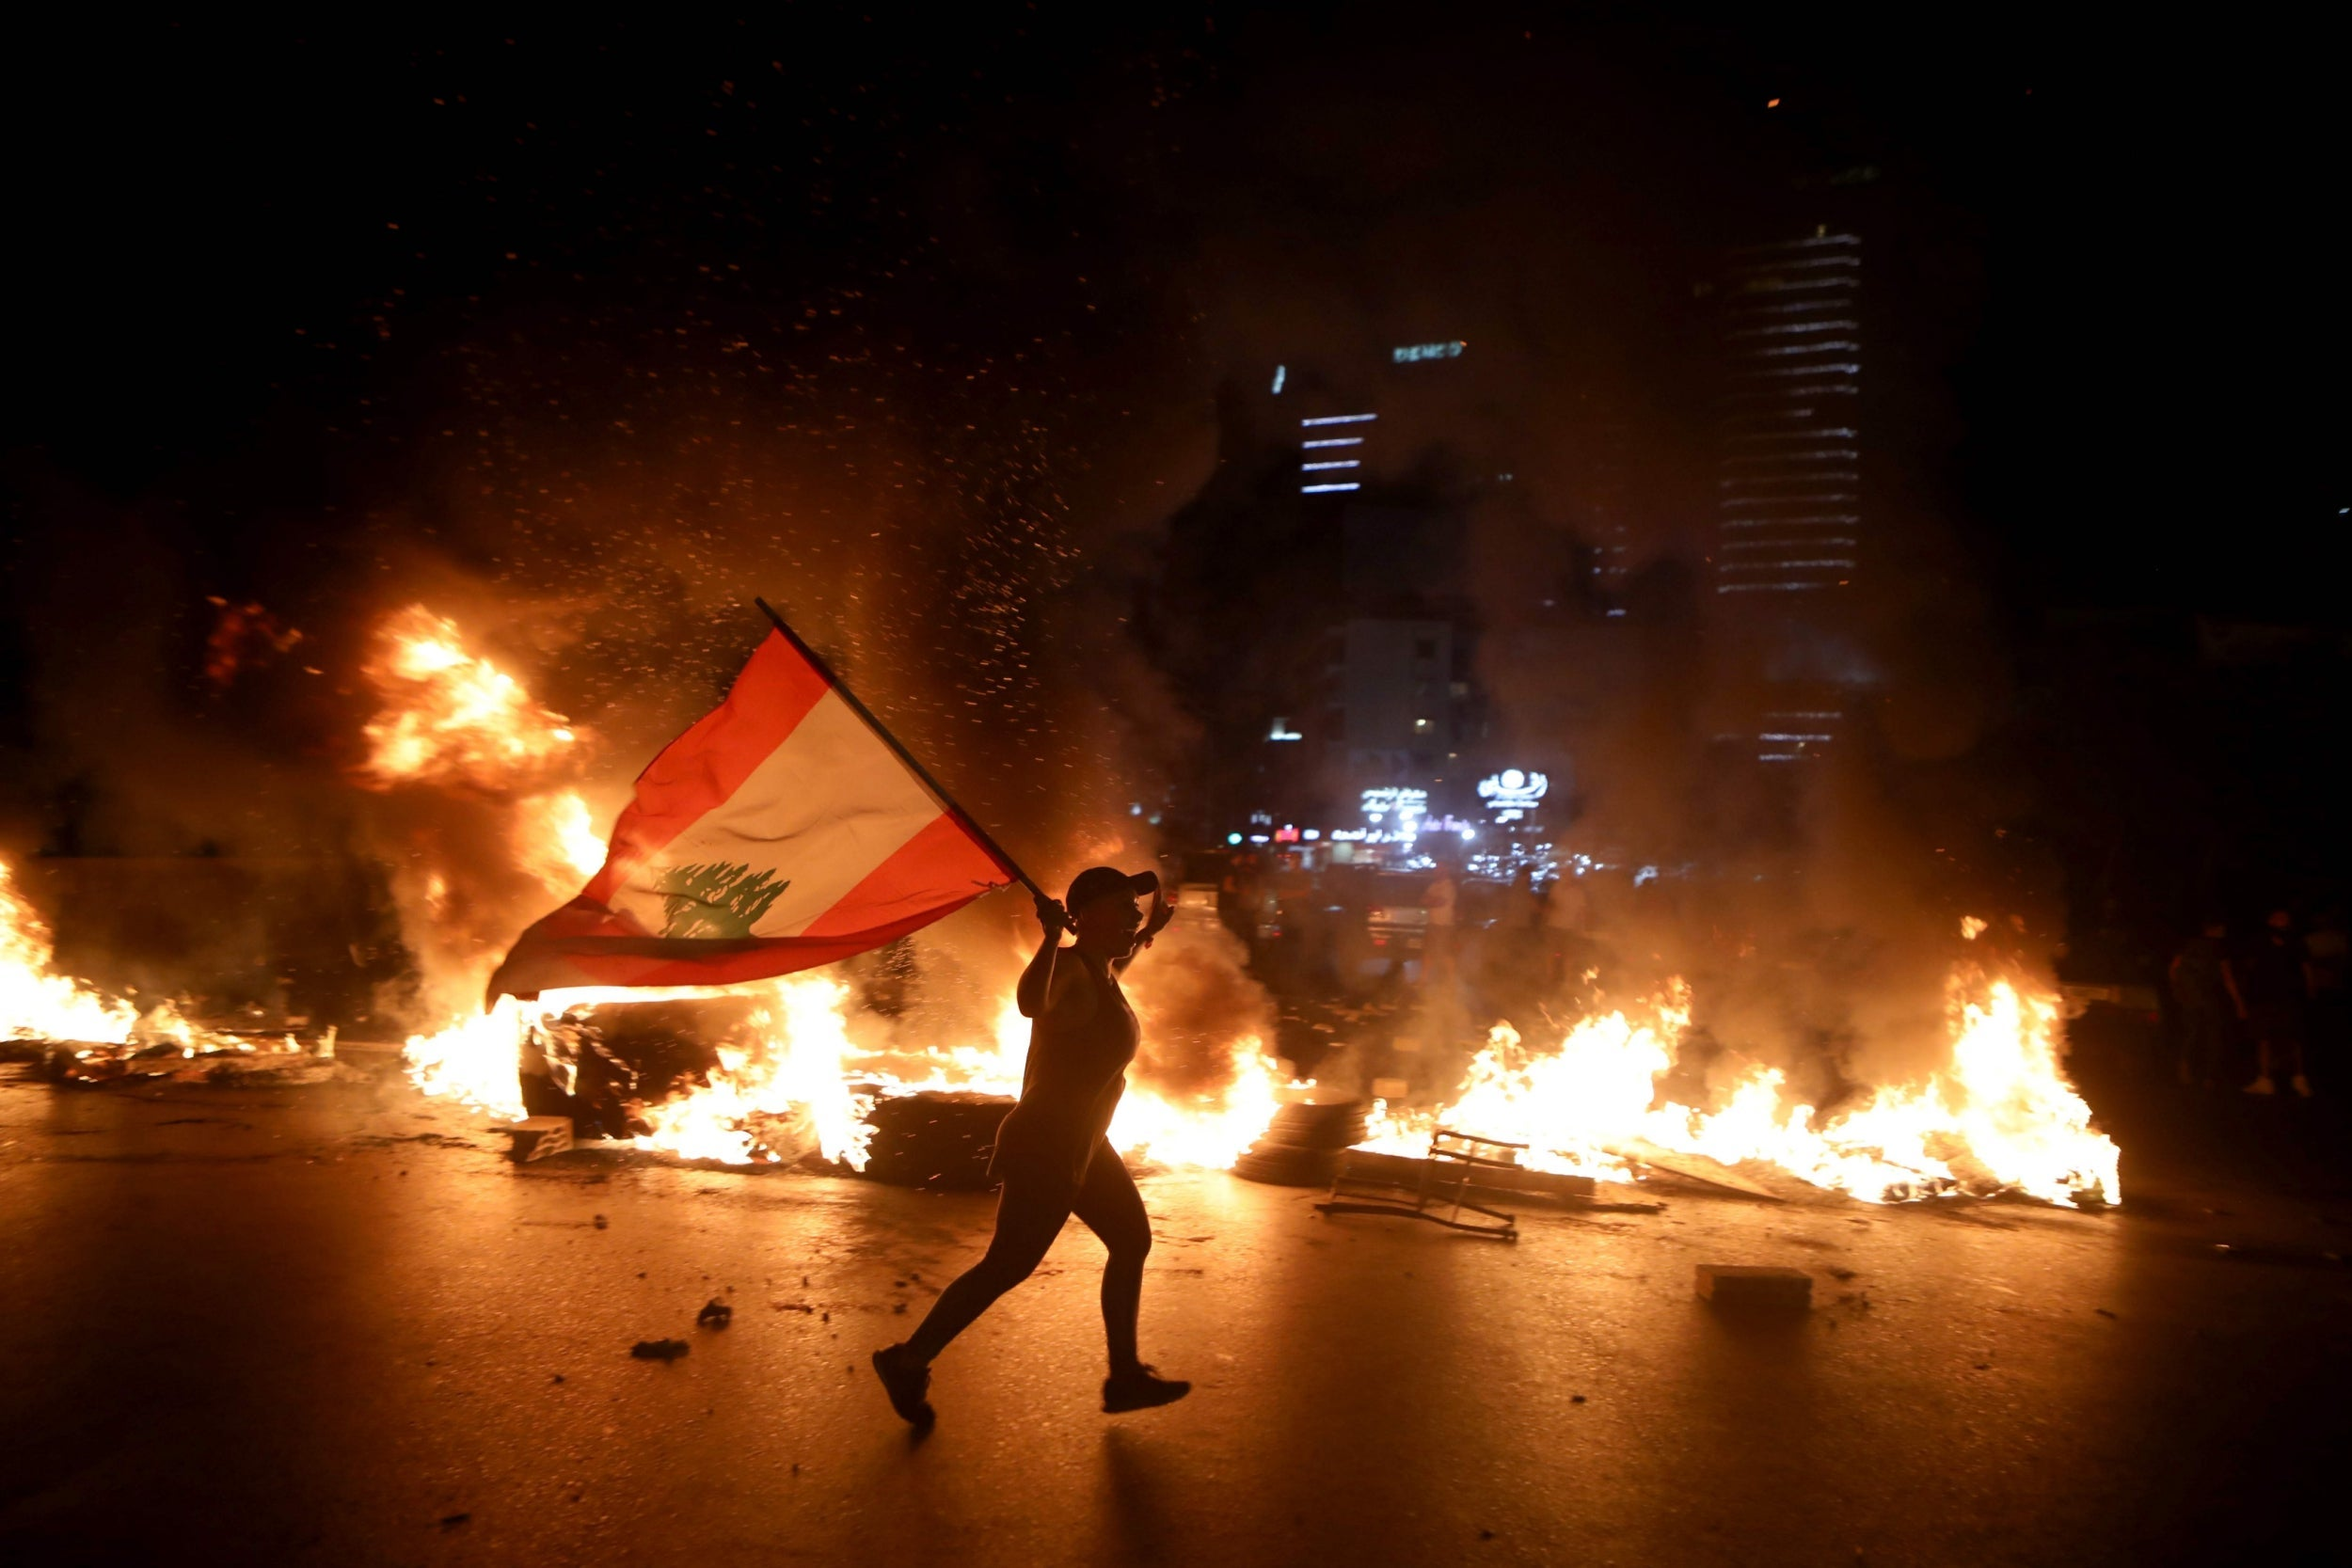 'The government is letting us starve': Nationwide protests erupt in Lebanon as currency plunges to record low thumbnail